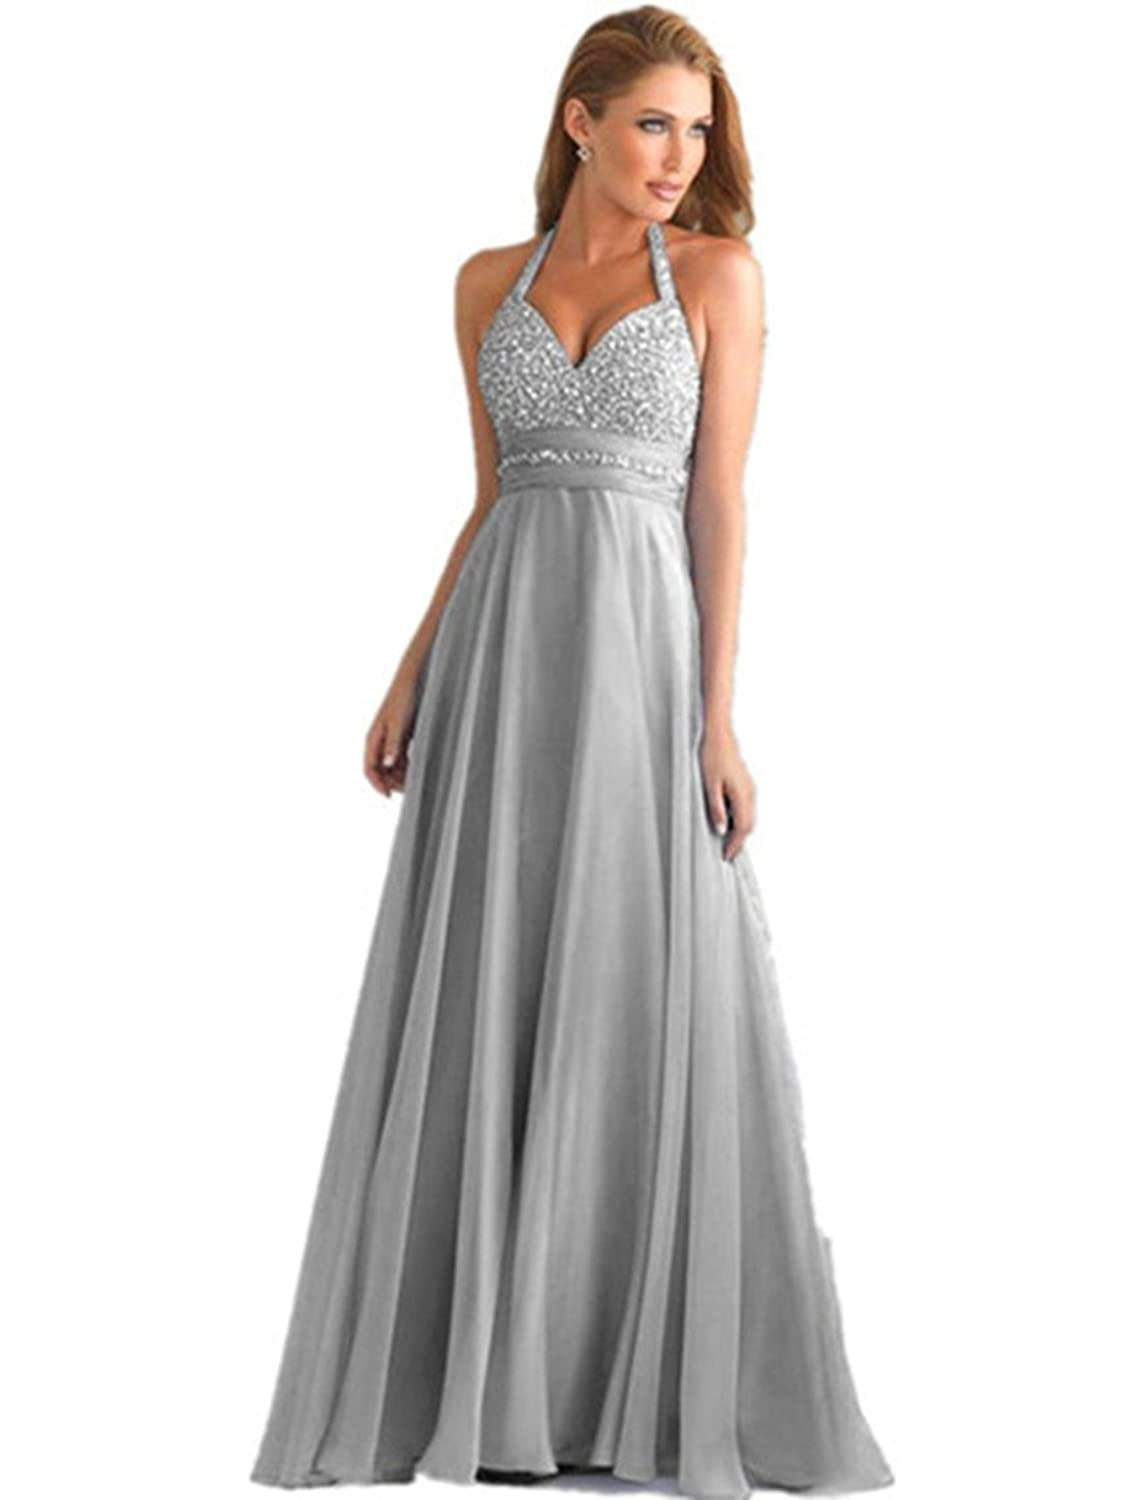 atopdress T8 GREY Evning helterneck prom sequined gown eveing dress